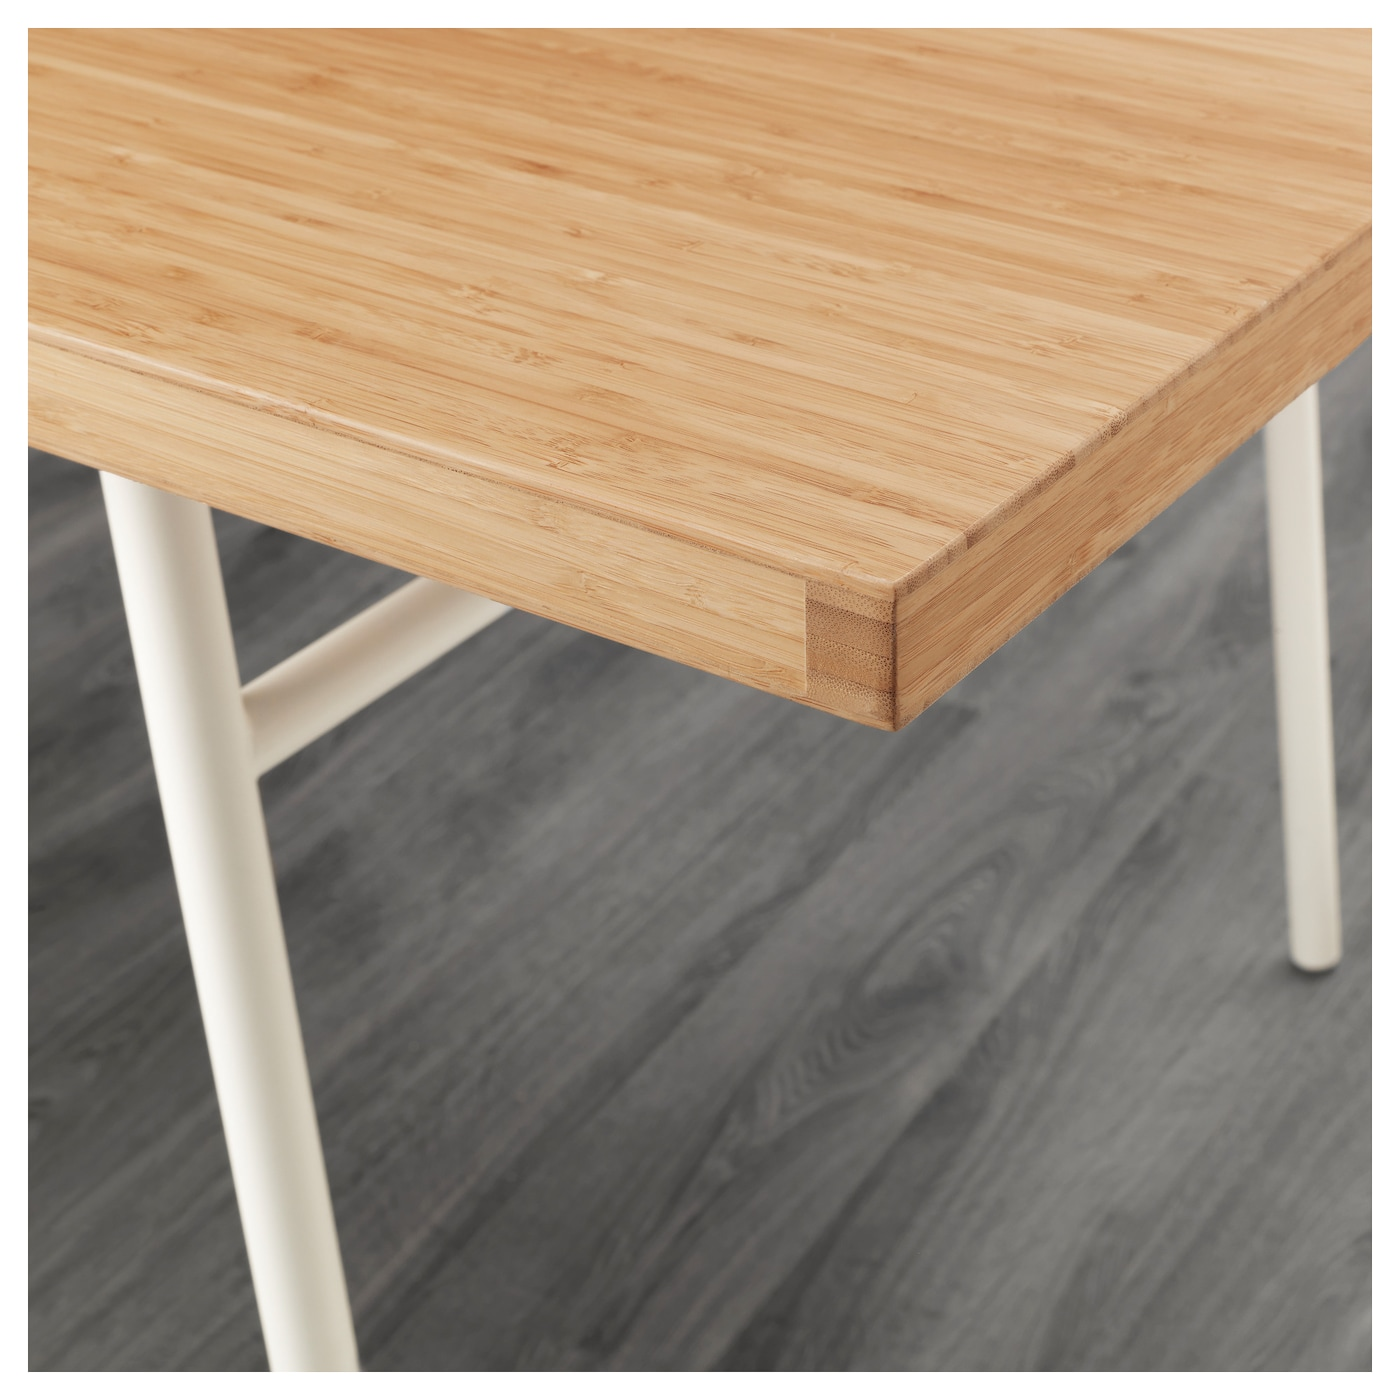 Anv ndbar table bamboo white 180 x 98 cm ikea for Ikea bamboo dining table